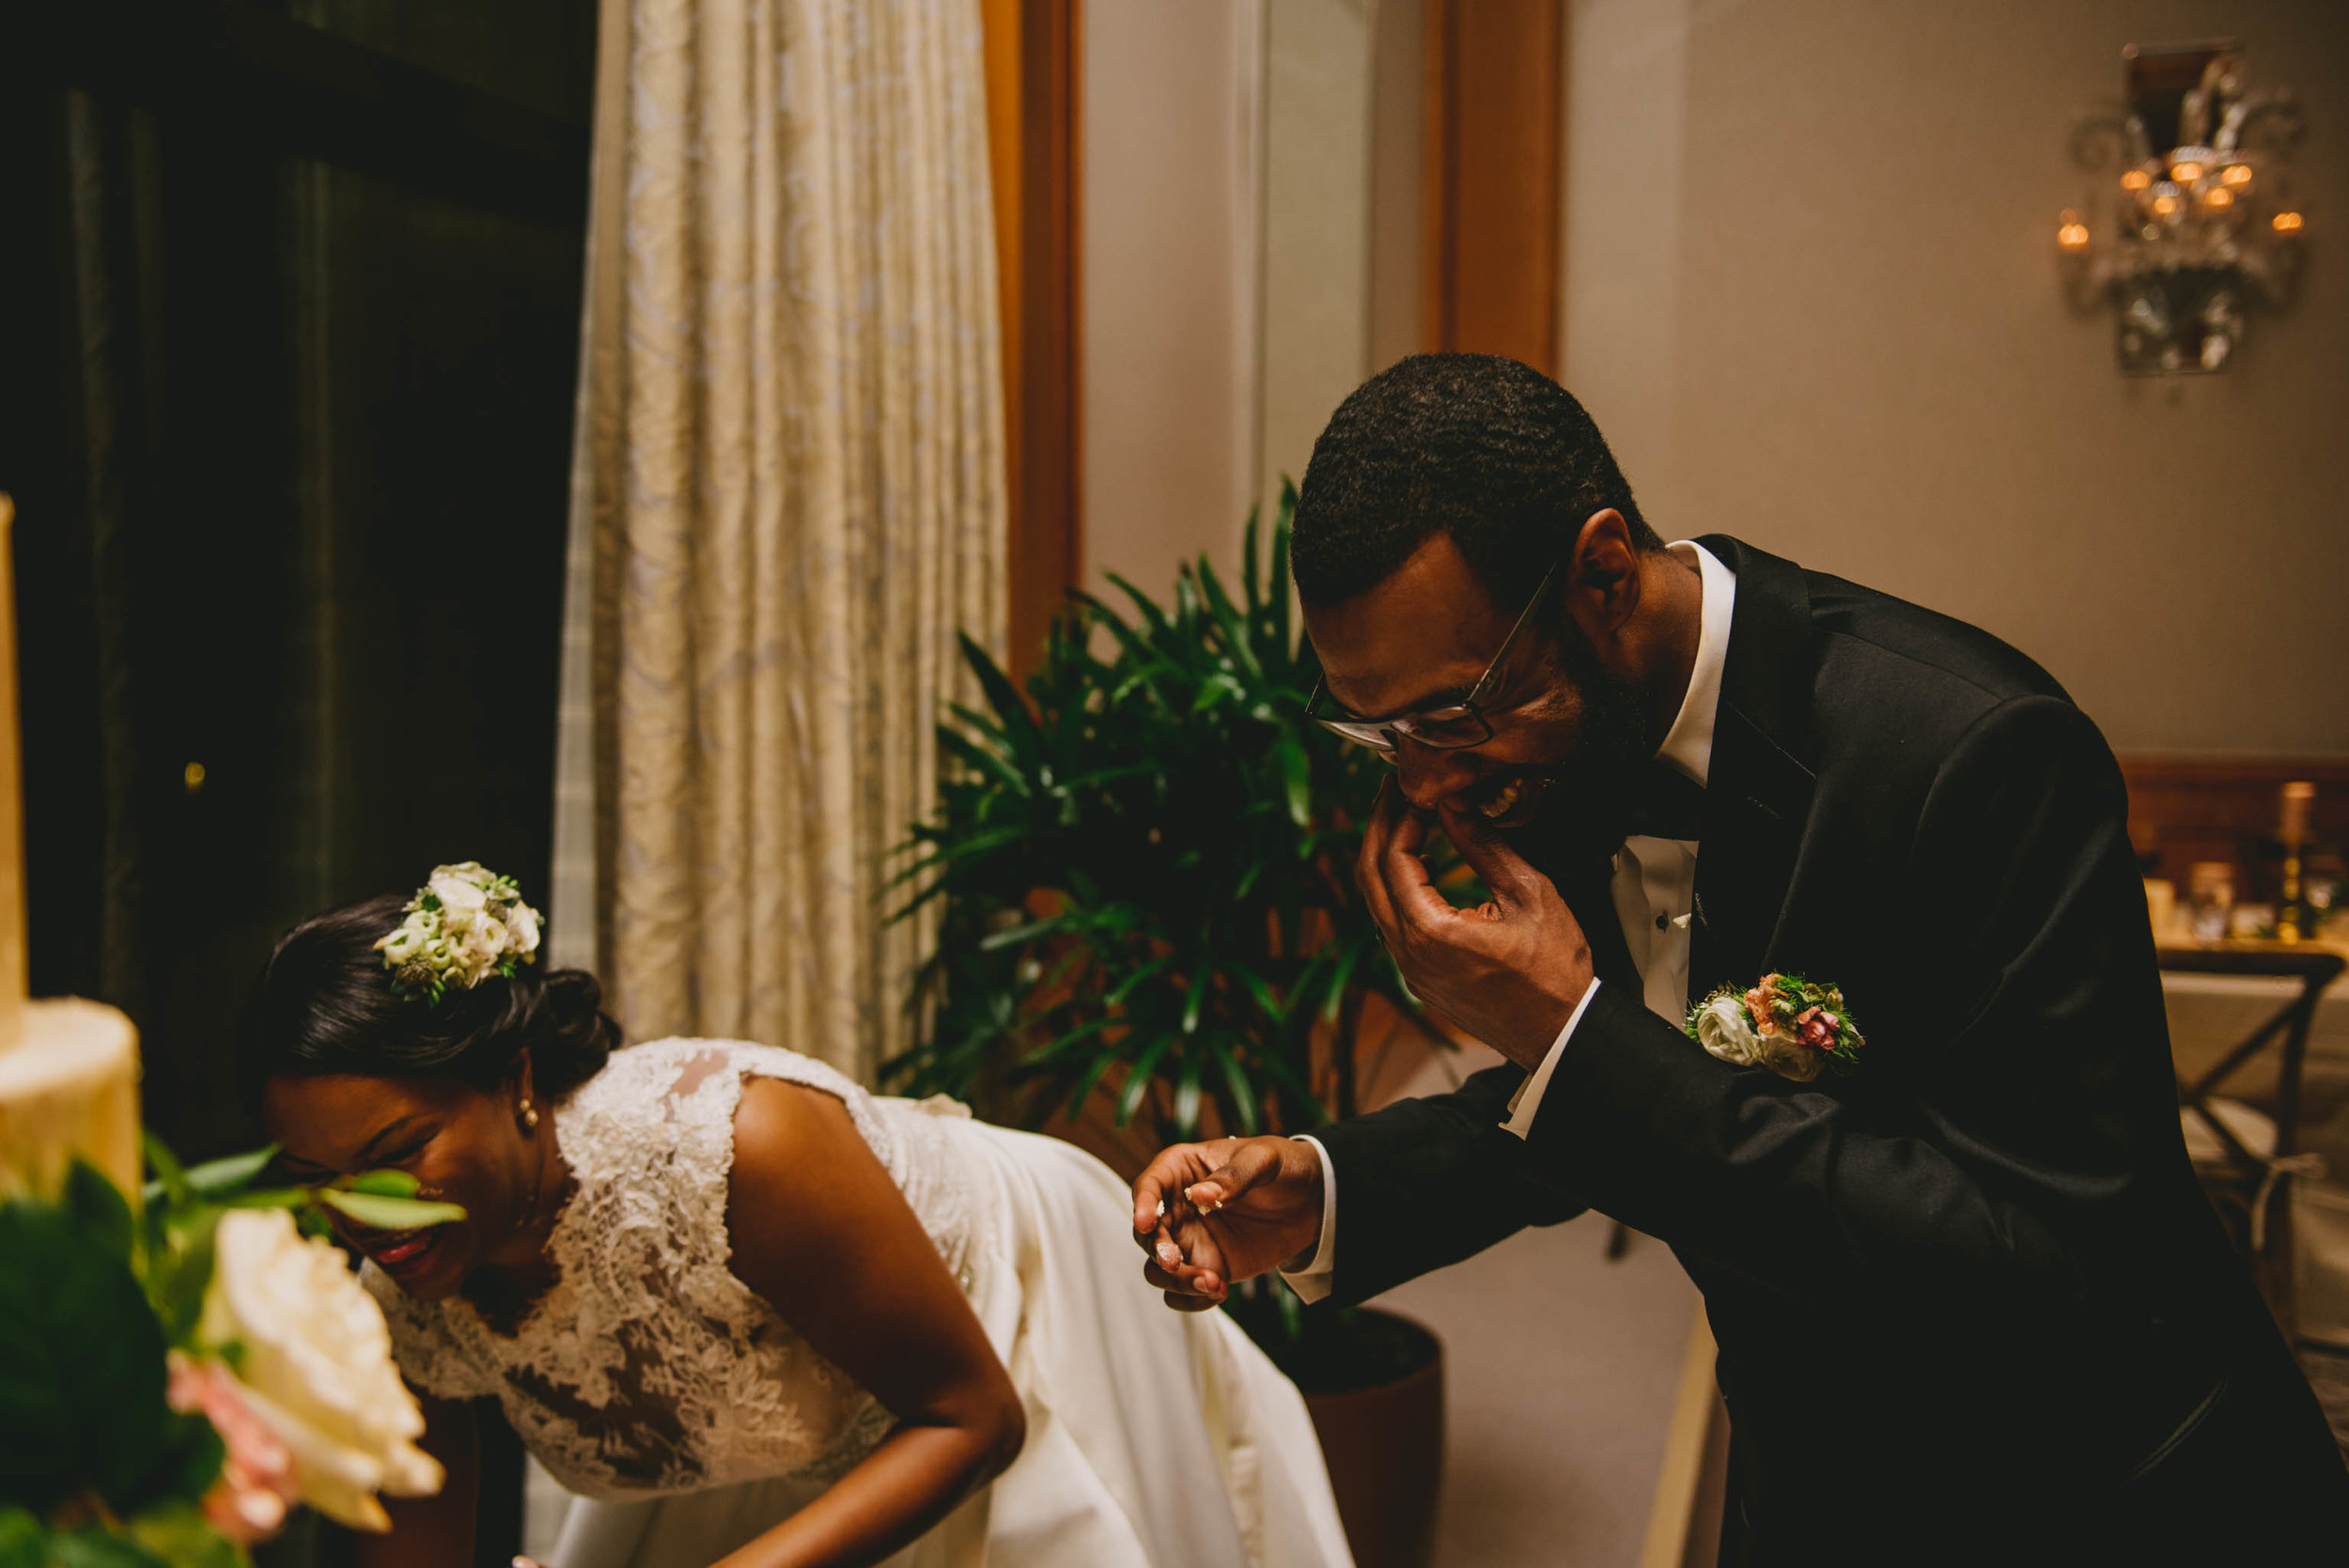 The bride and groom clean cake off their faces